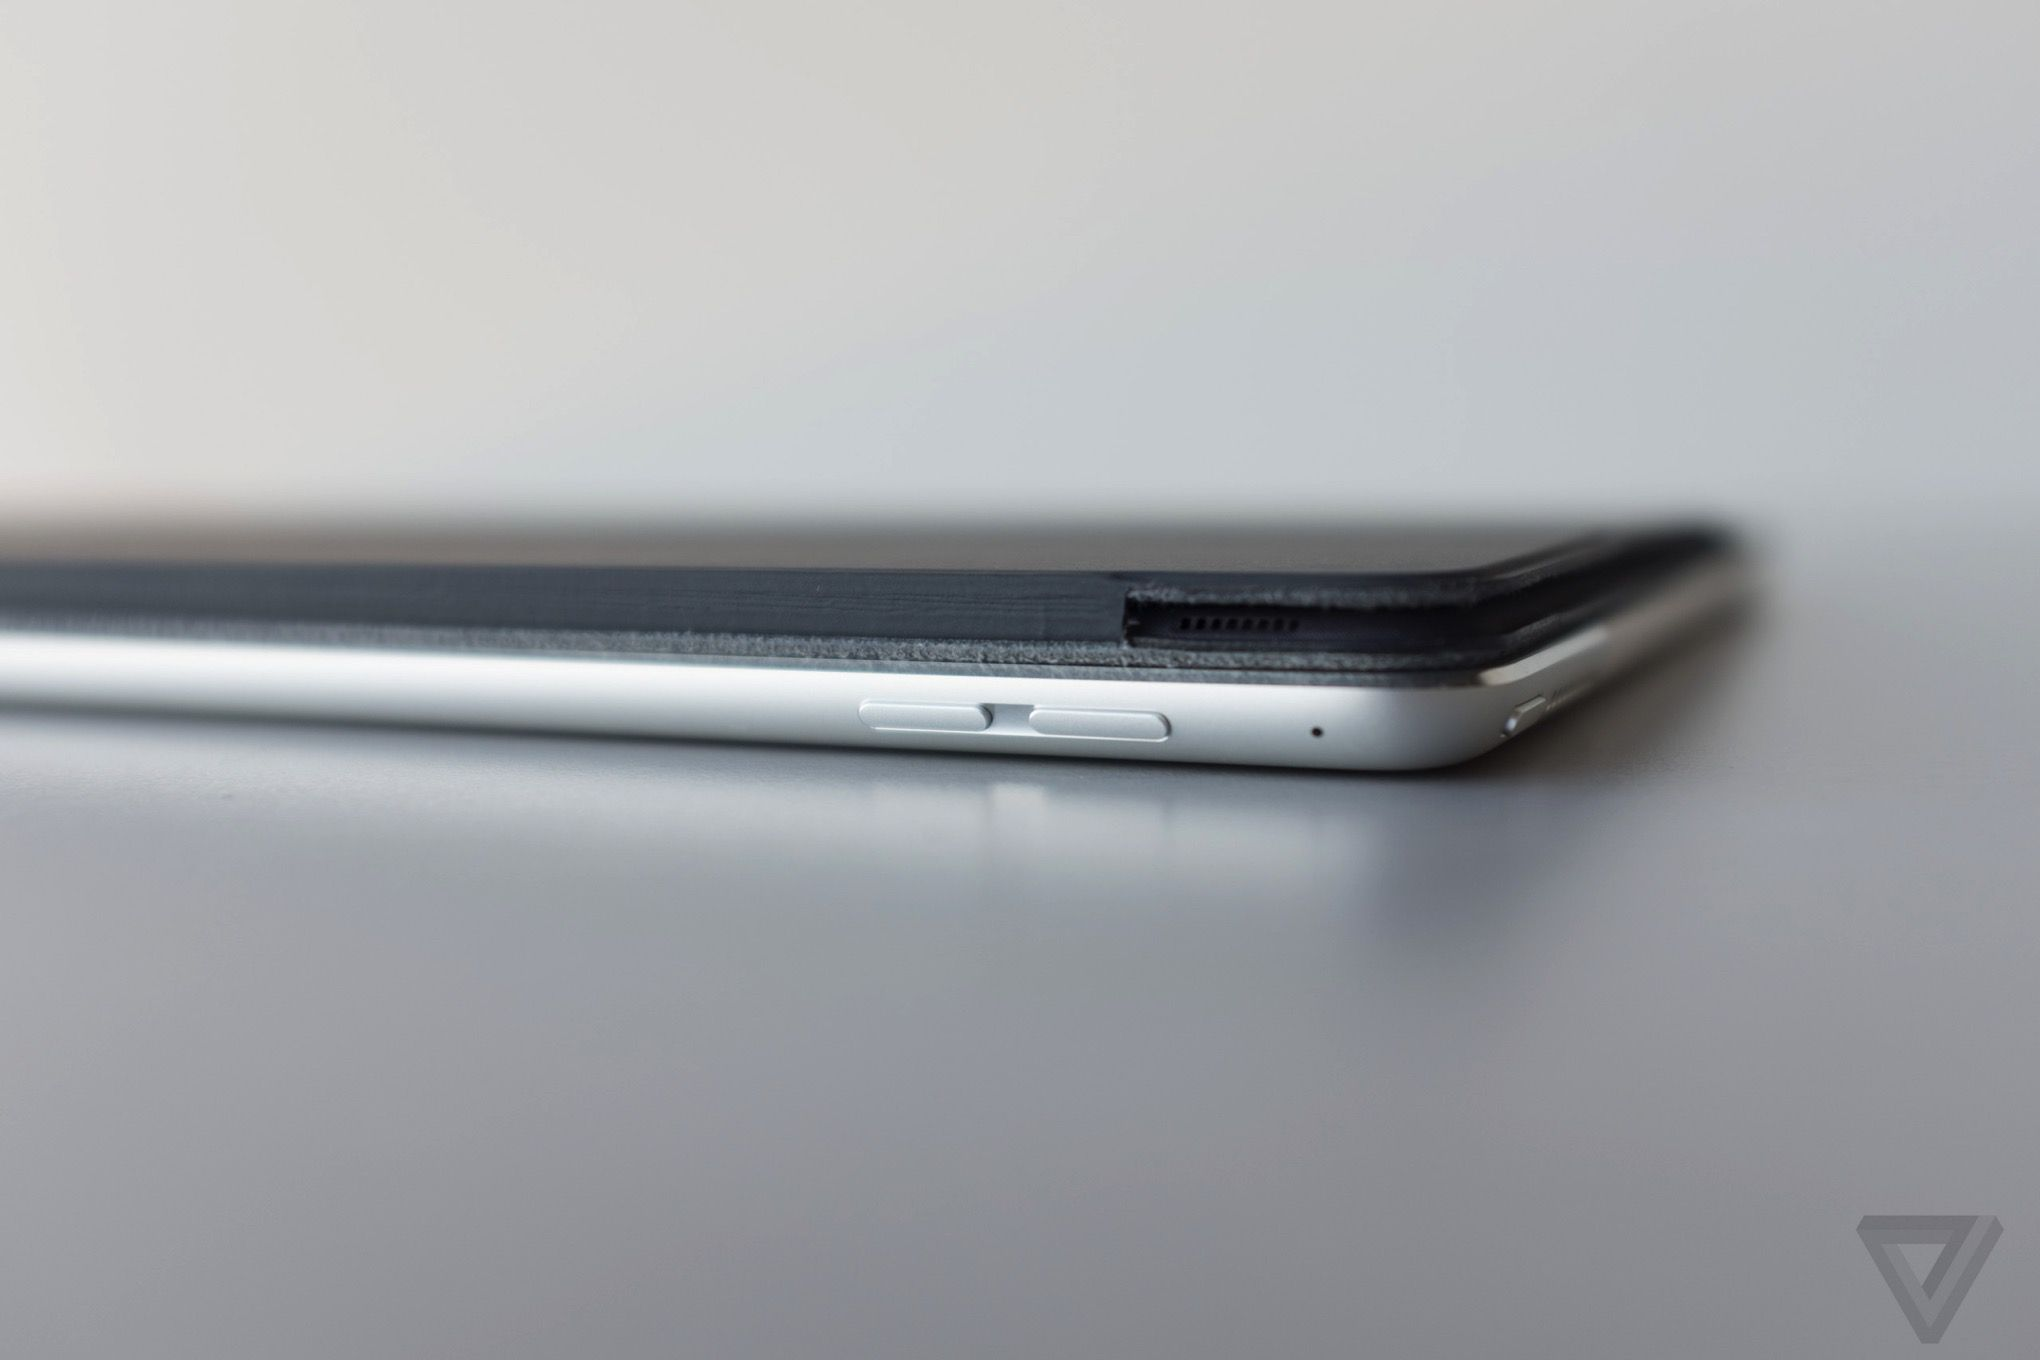 Mossberg The iPad Pro can t replace your laptop totally even for